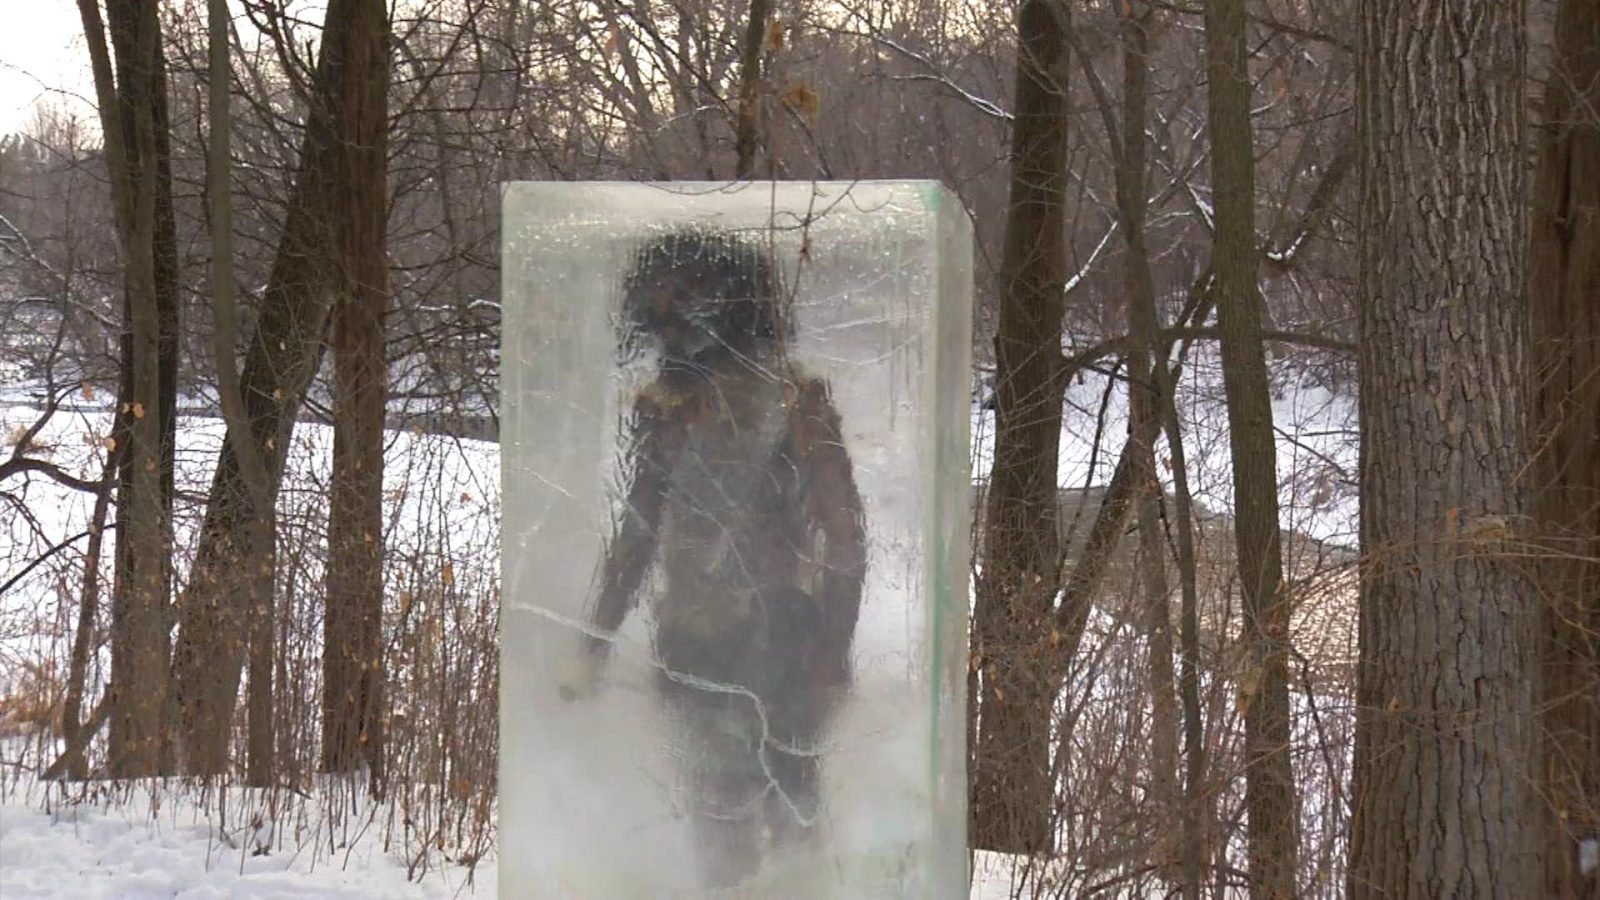 Frozen Caveman' Draws Curious Onlookers to Theodore Wirth Park